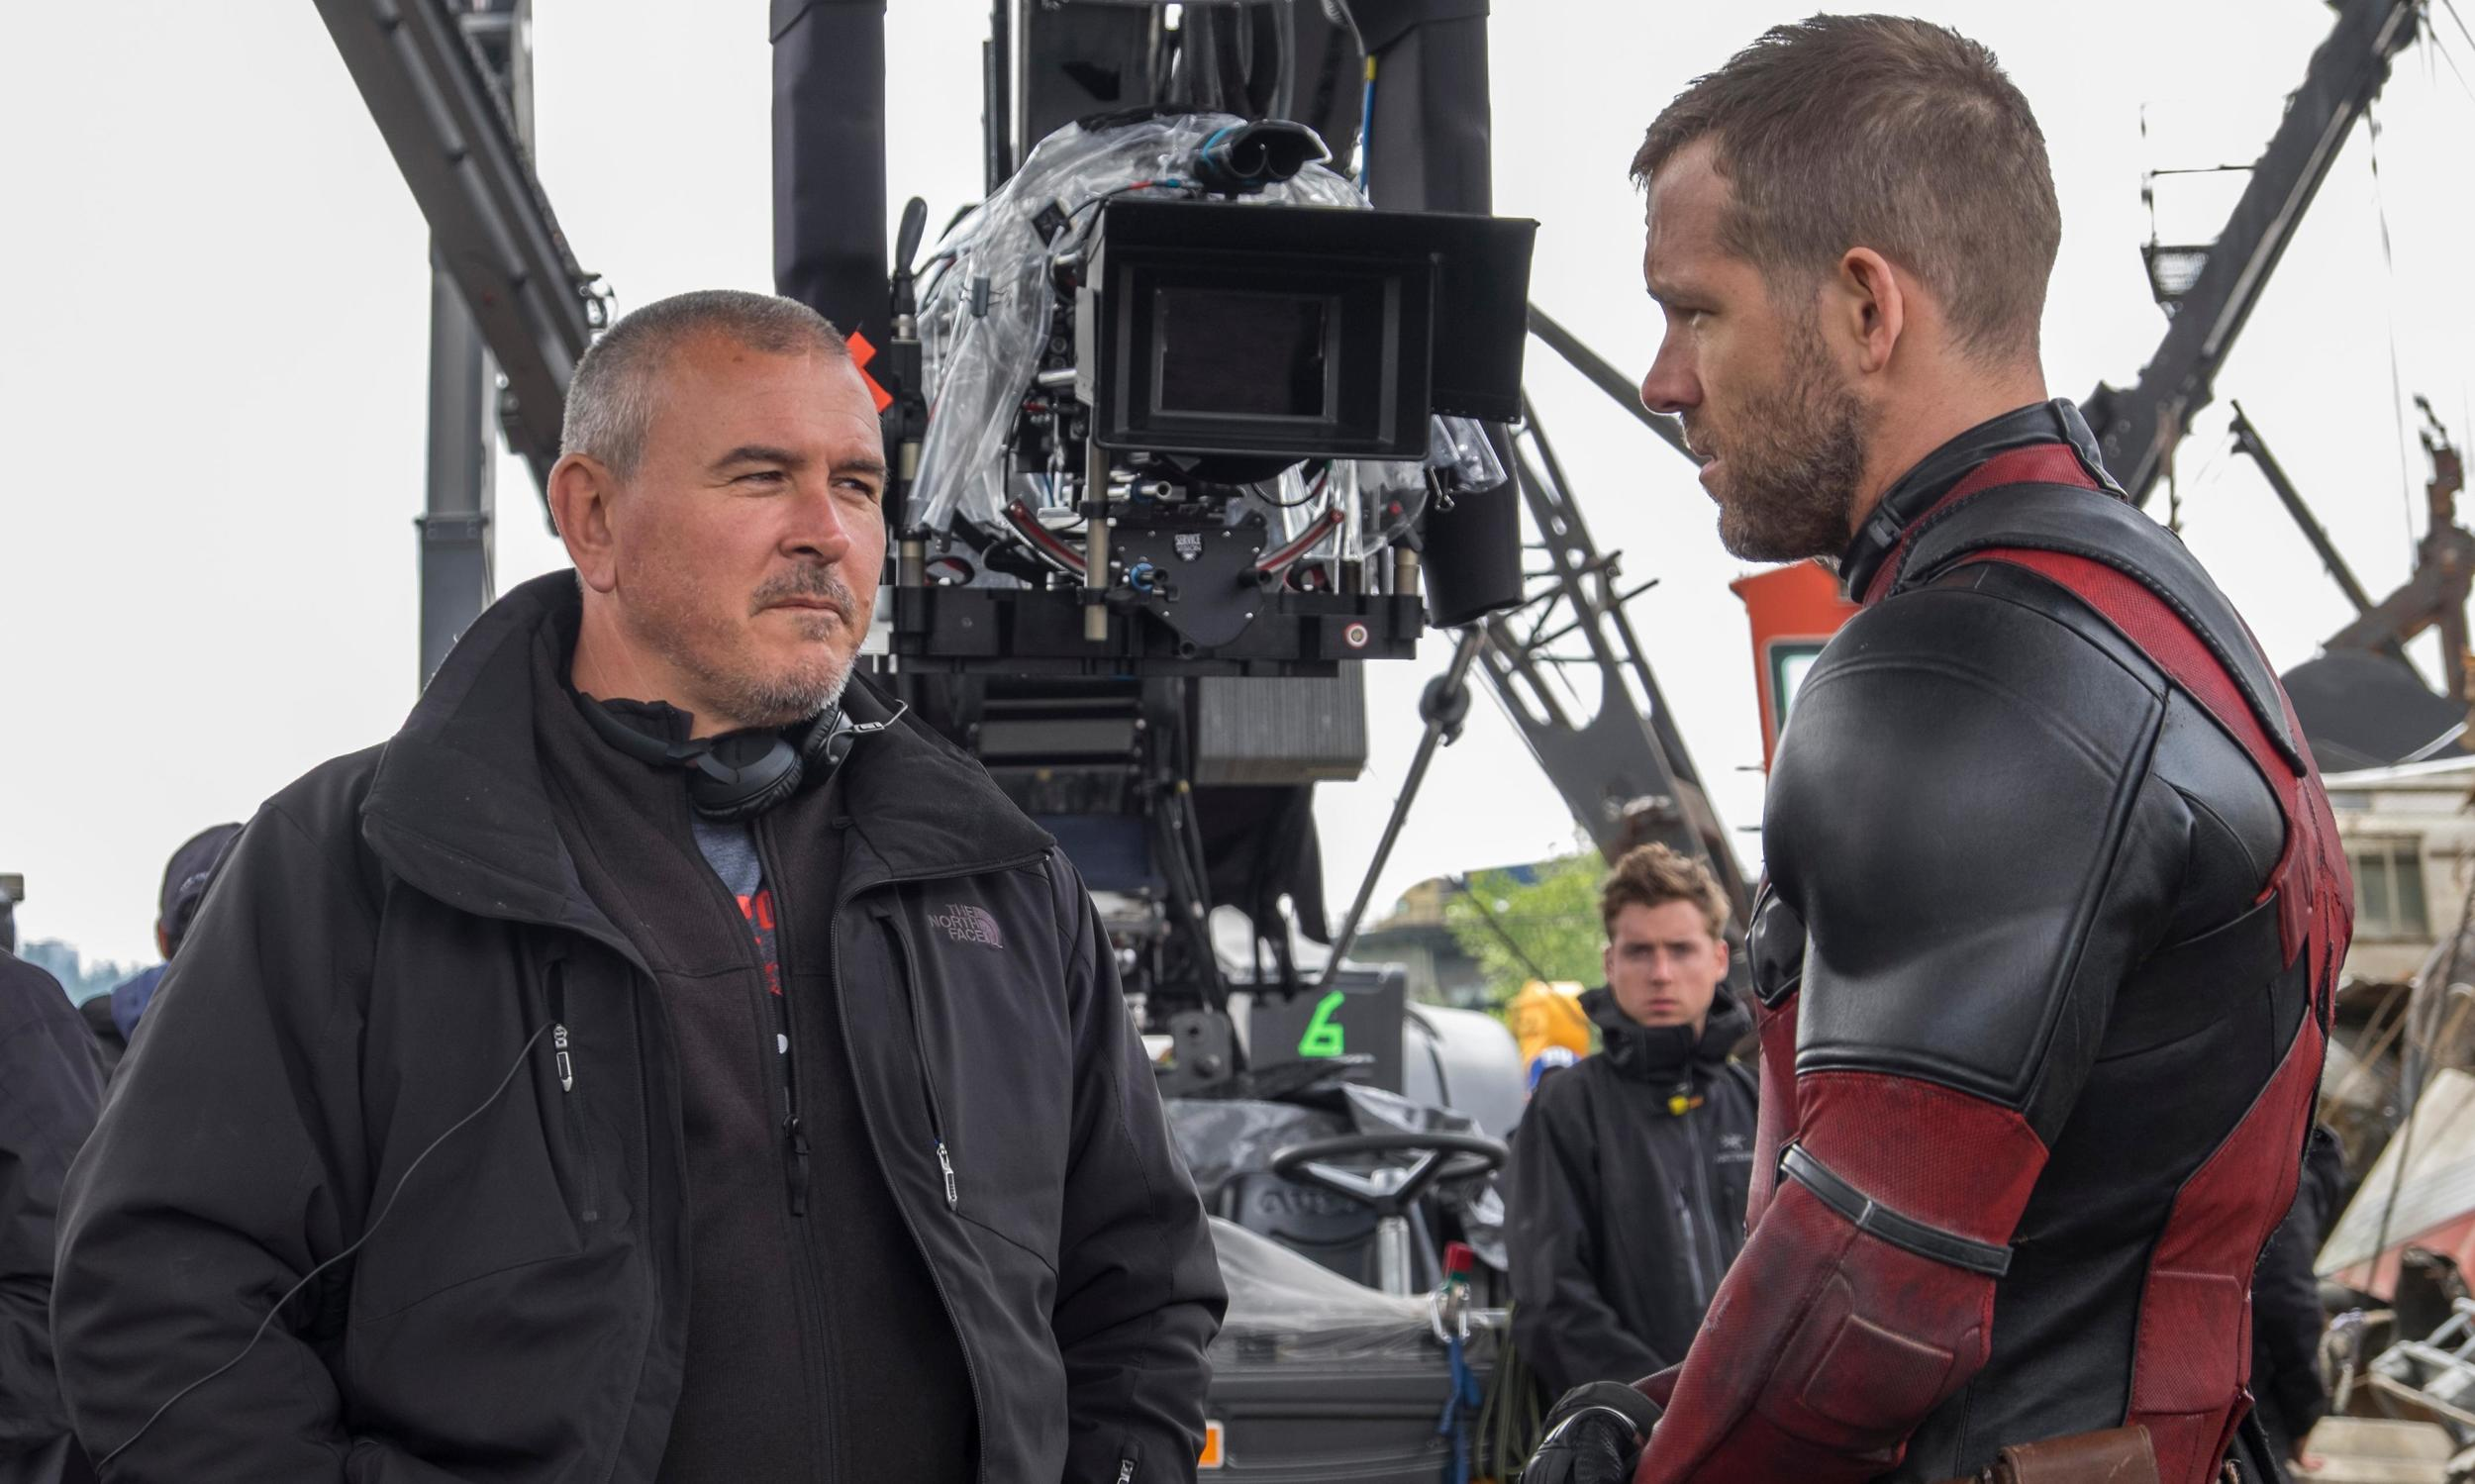 First time director of Deadpool Tim Miller with star Ryan Reynolds on-set with ARRI Alexa XT in the background.